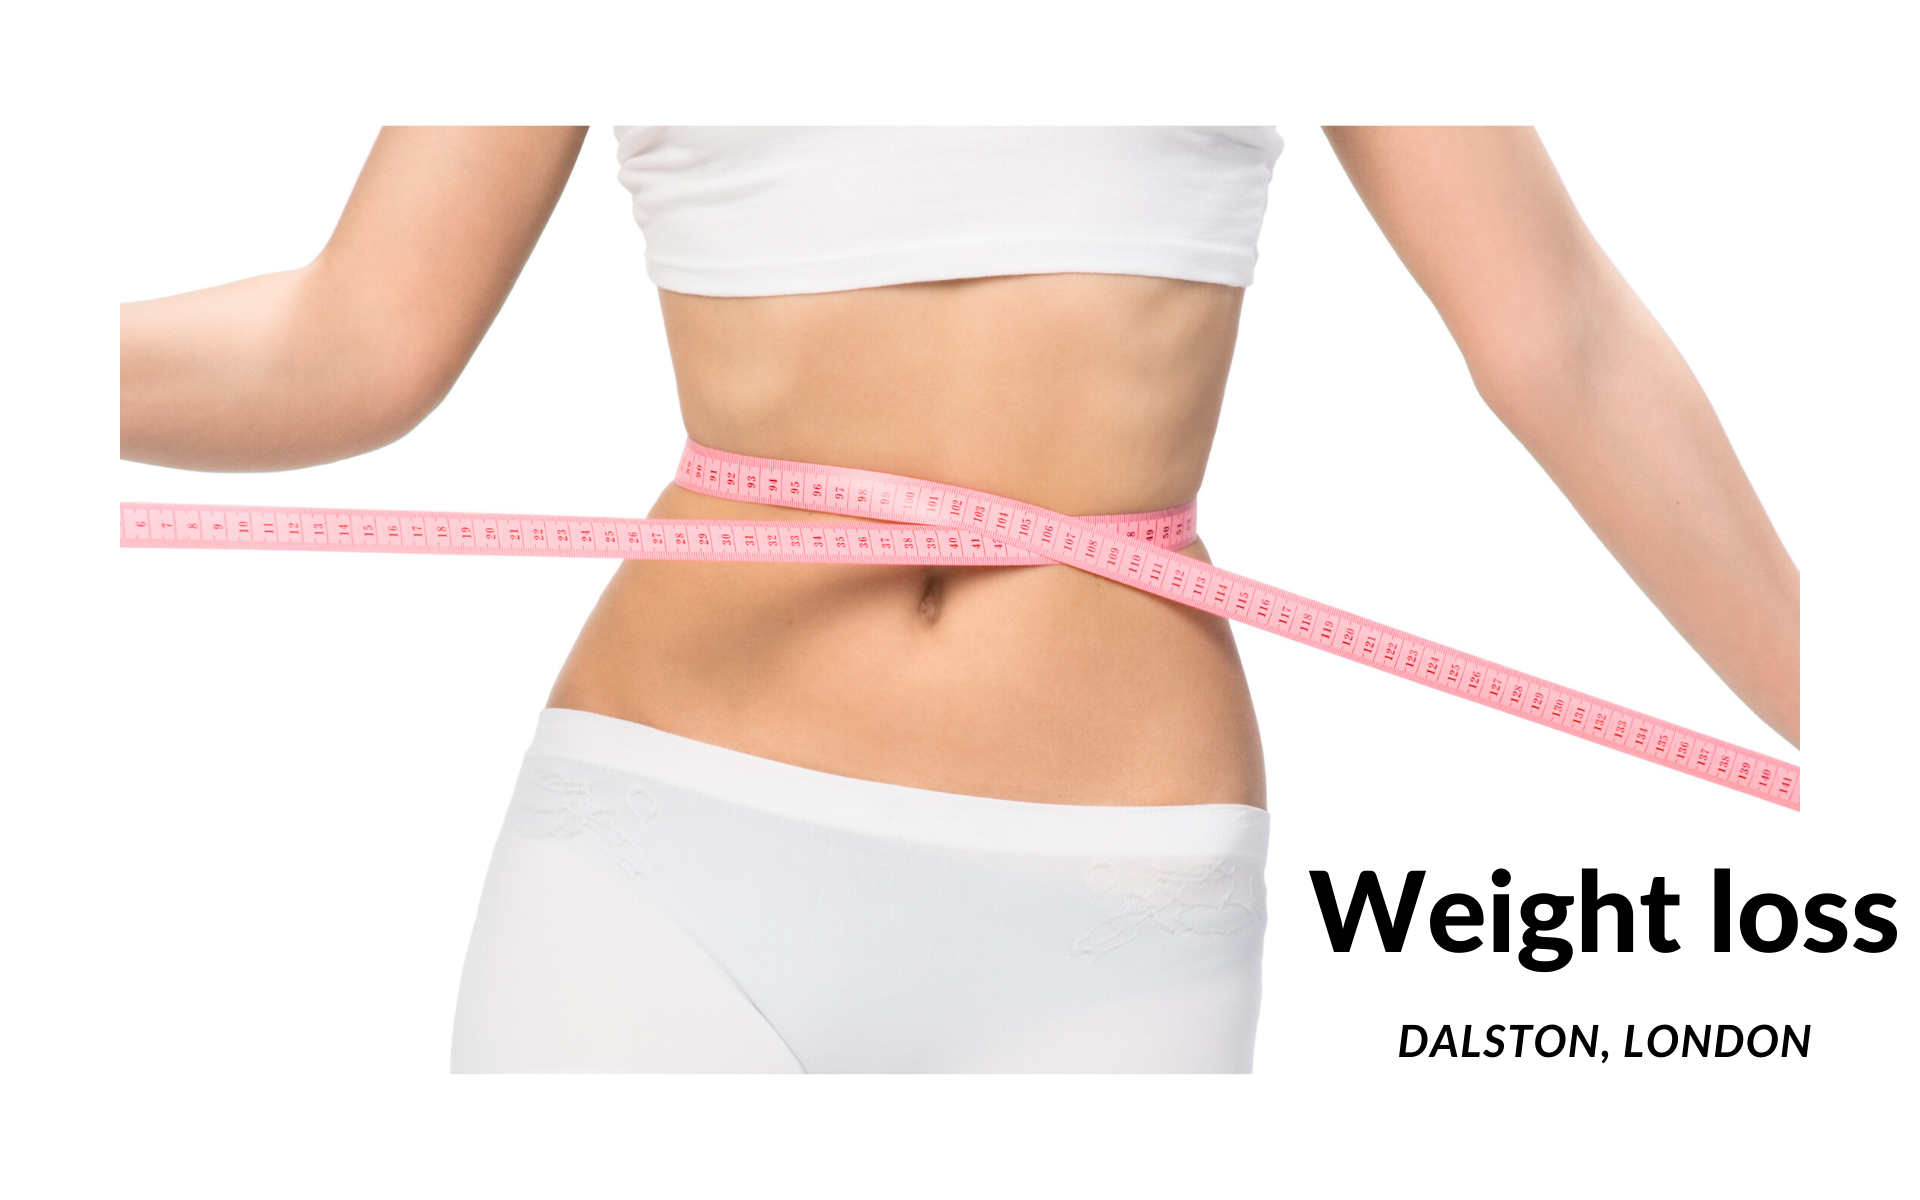 Weight loss management in Dalston, London